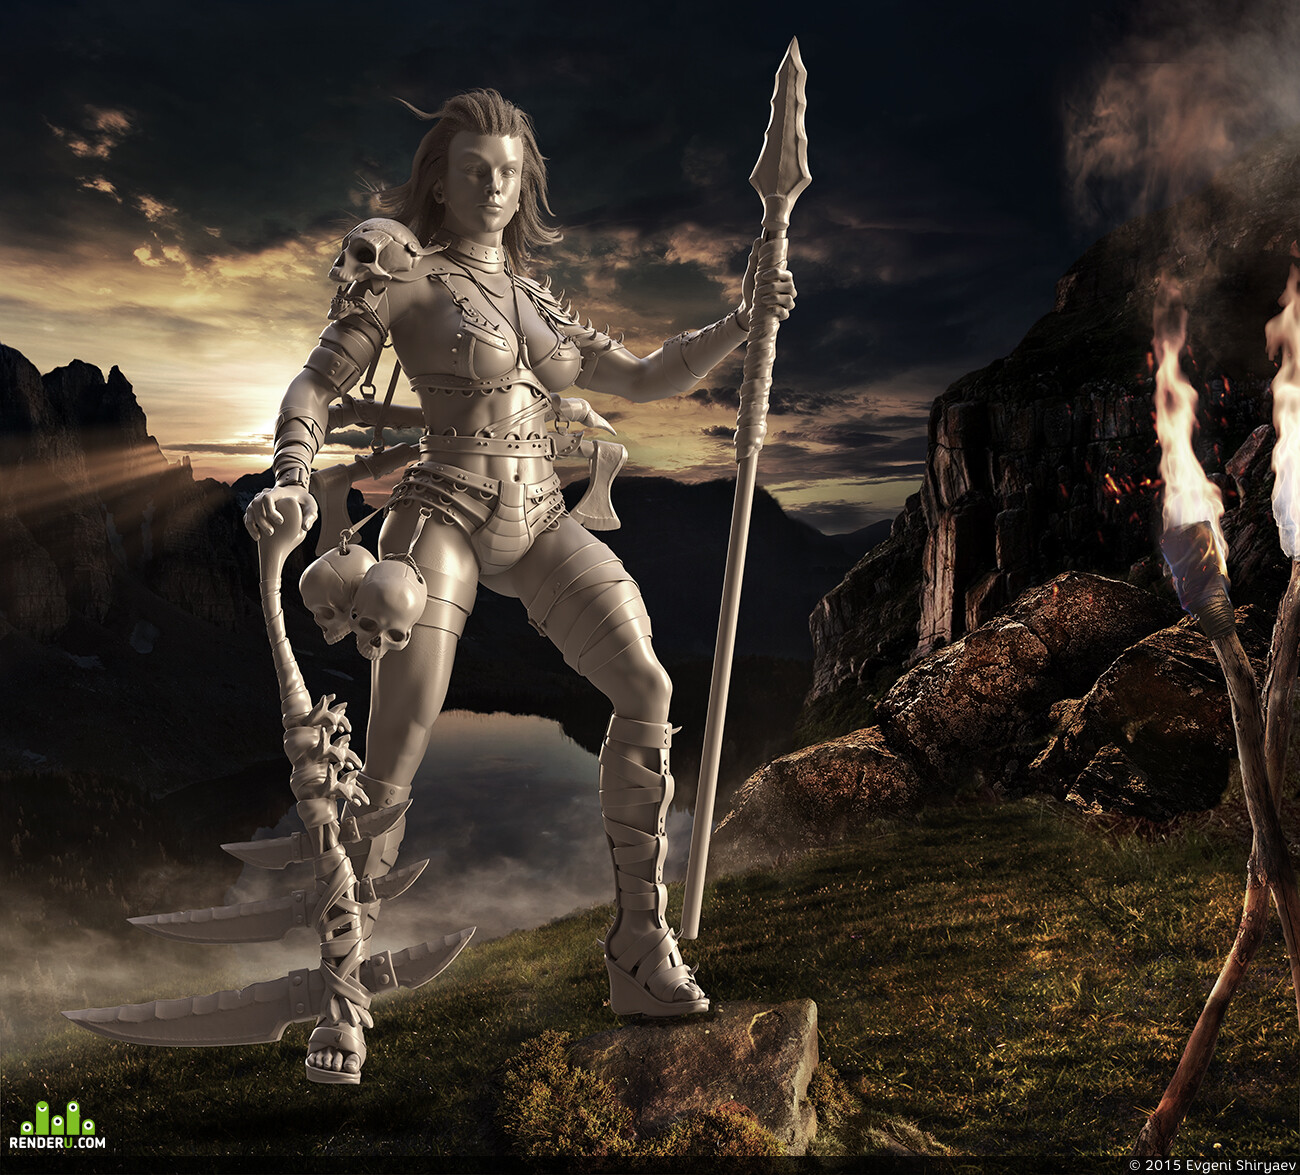 Matte painting, girl warrior, sunset, mountain